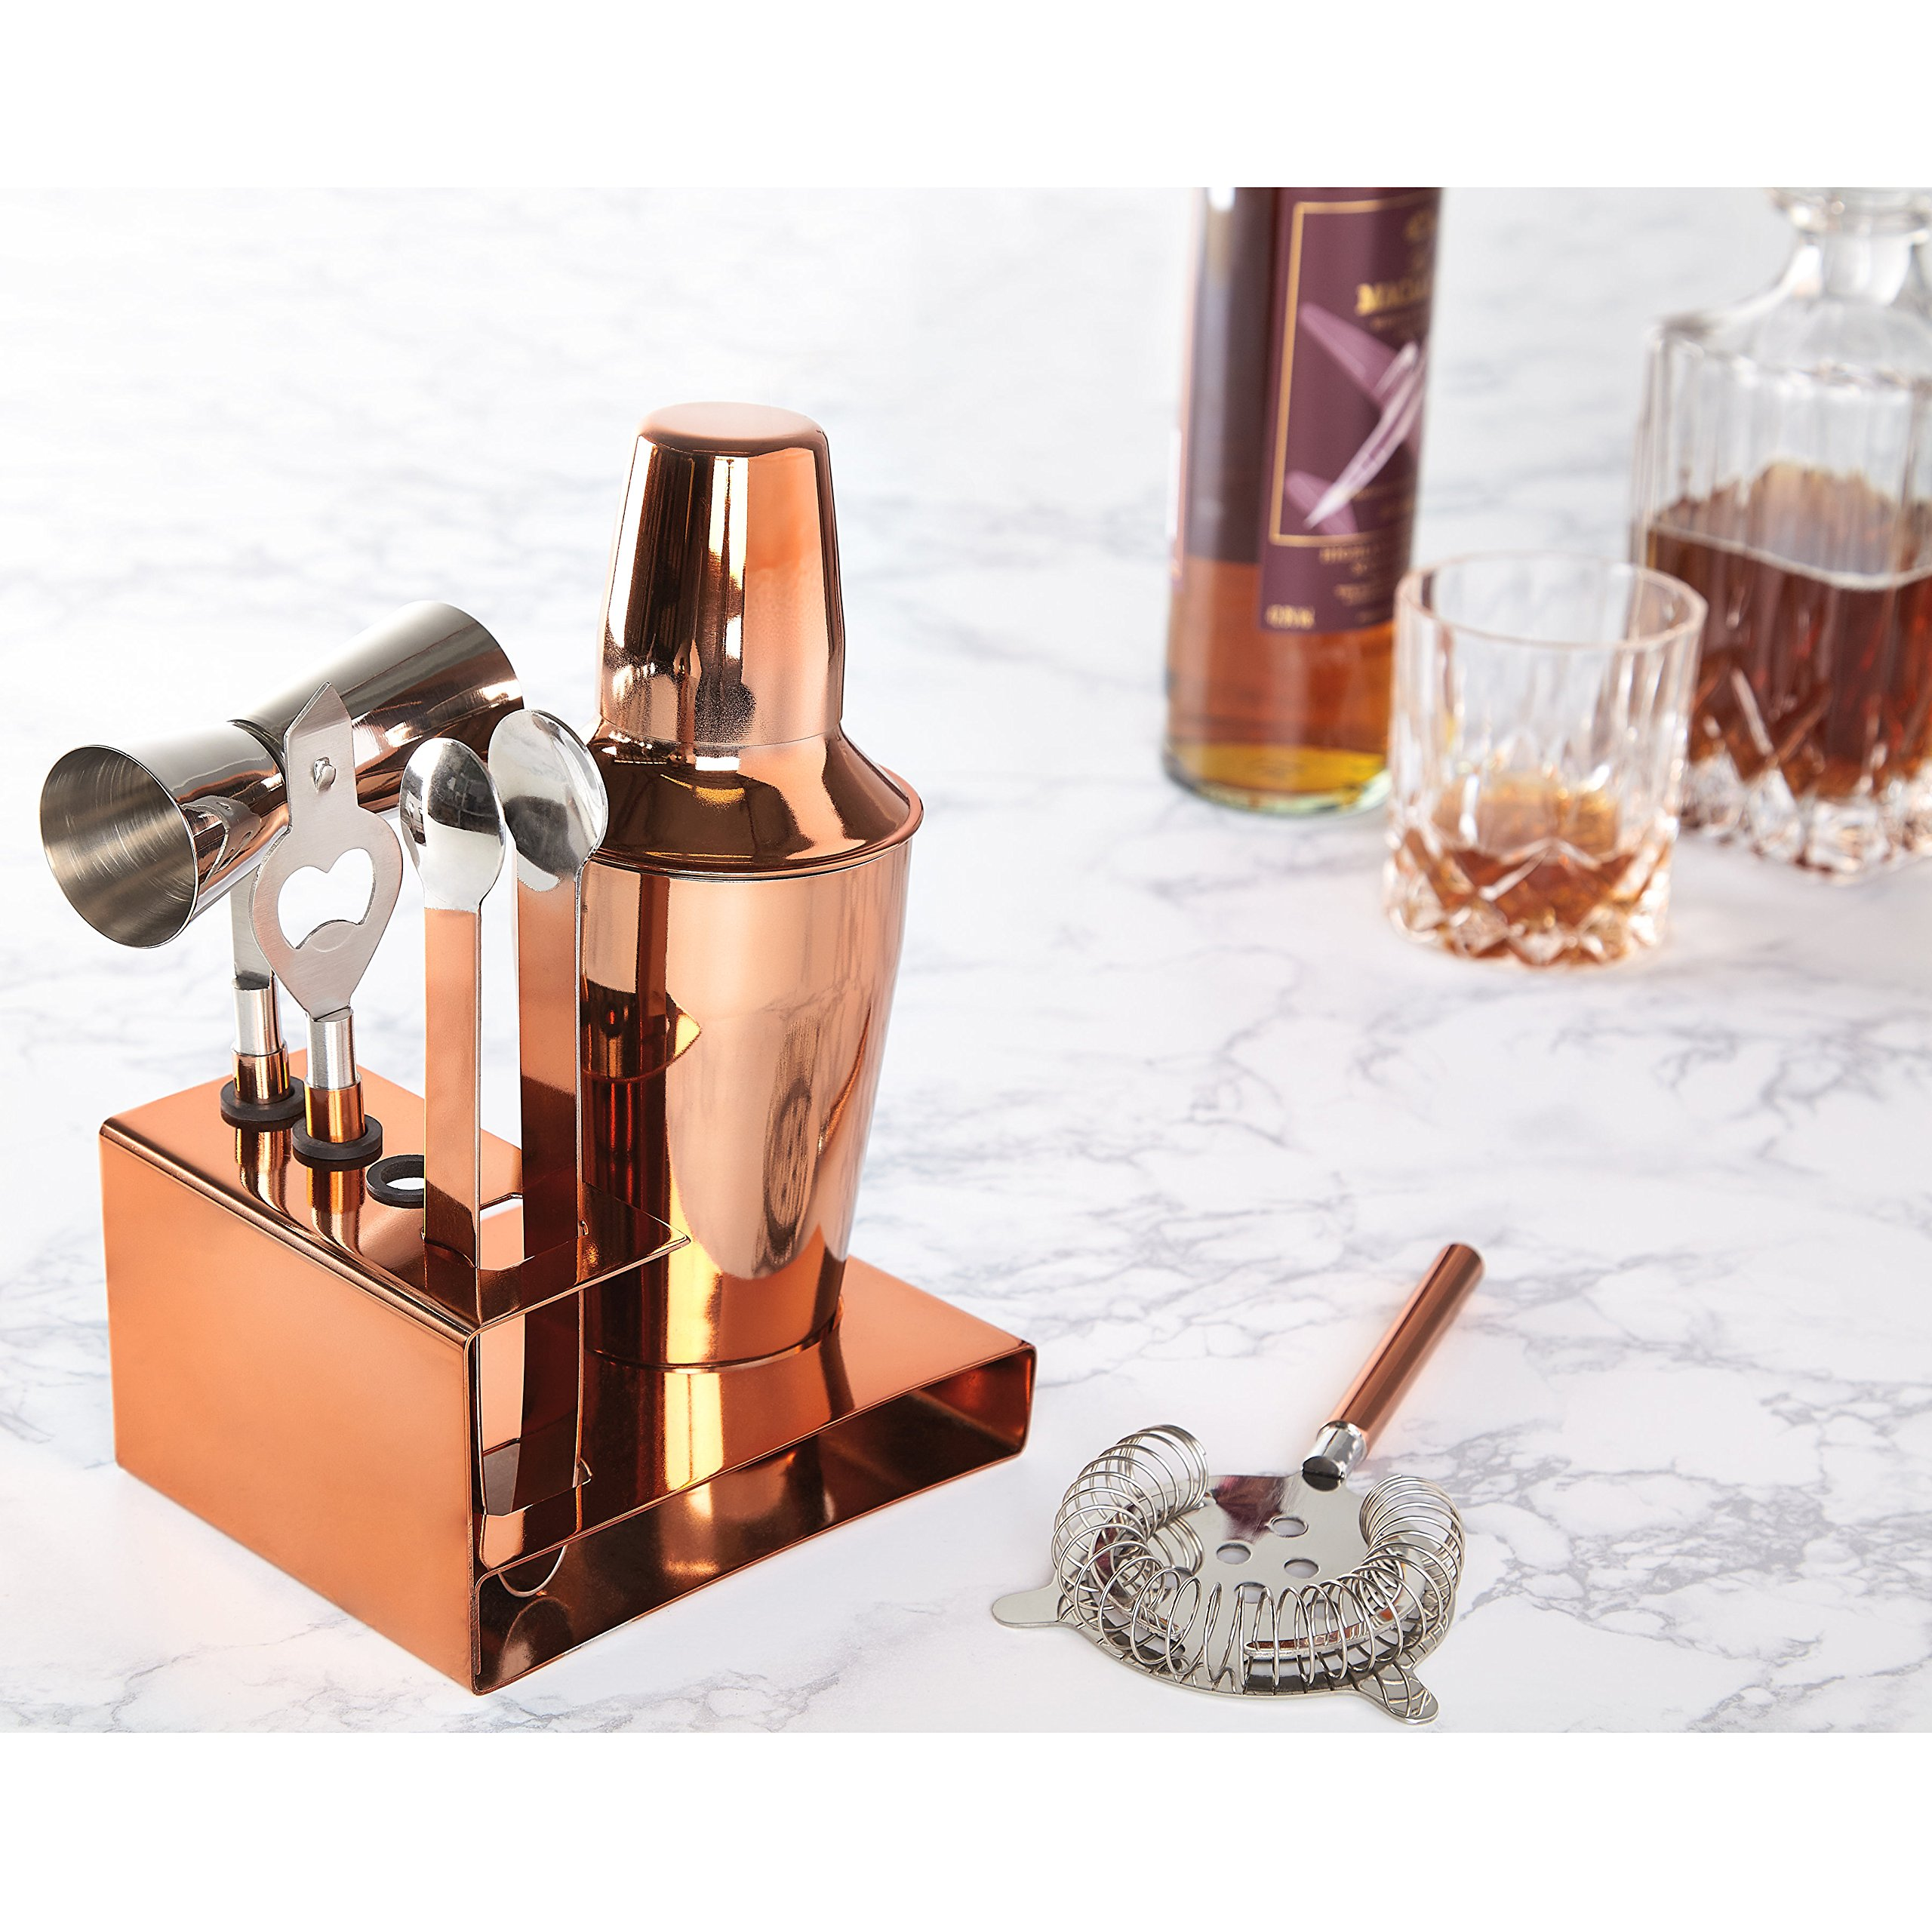 Miko Premium Cocktail Bar Set, High Grade Stainless Steel 6 Piece Set, Made In India (Rose Gold) by Miko (Image #1)